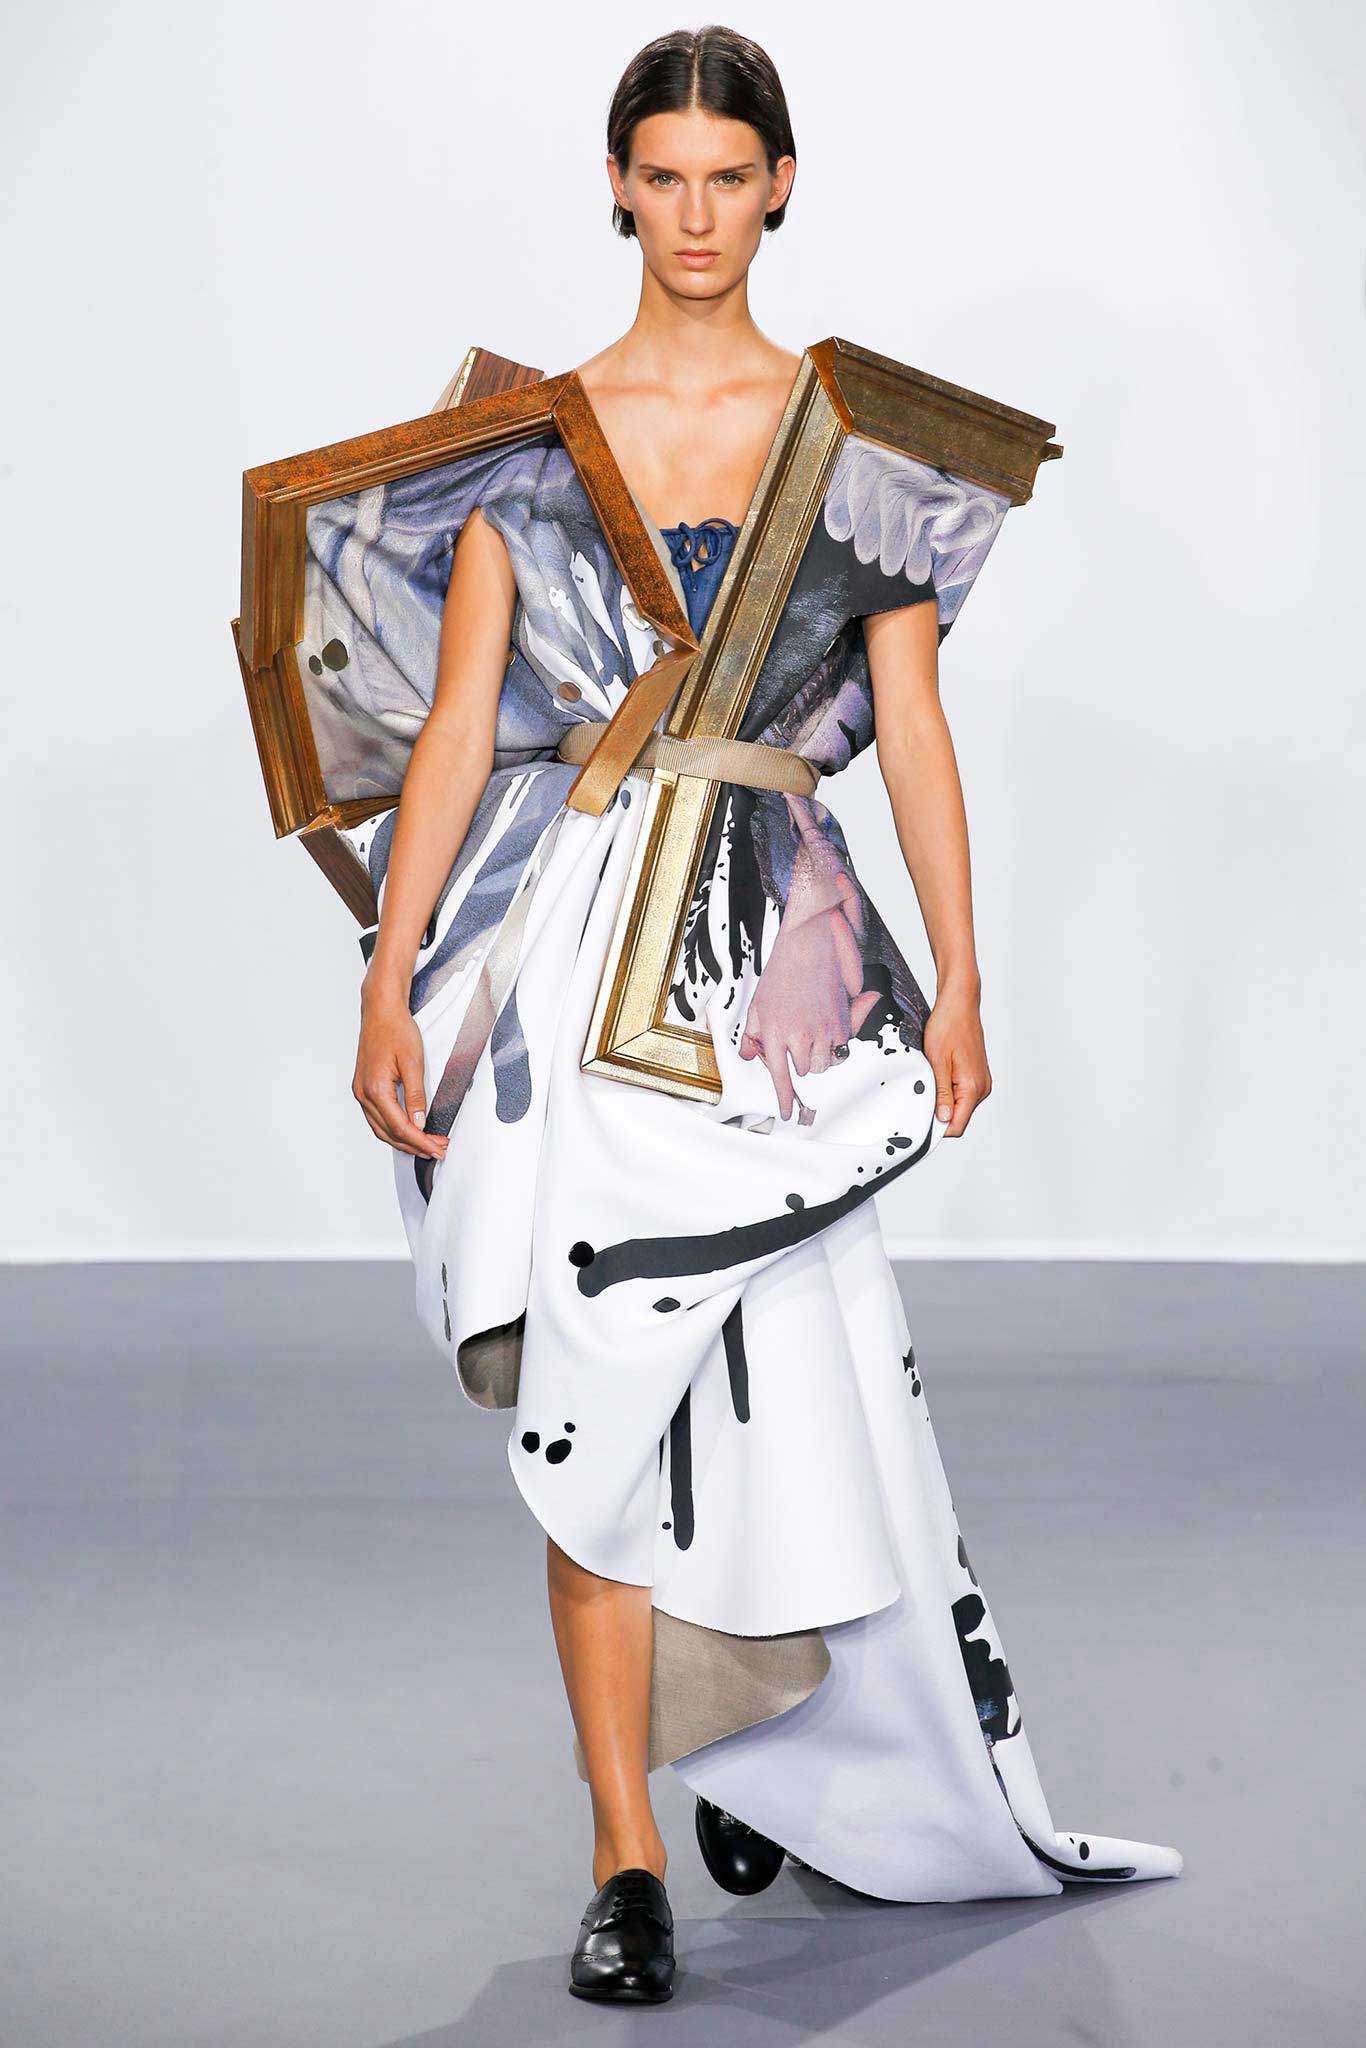 Viktor + Rolf Dress Models in Wearable Paintings   Yellowtrace